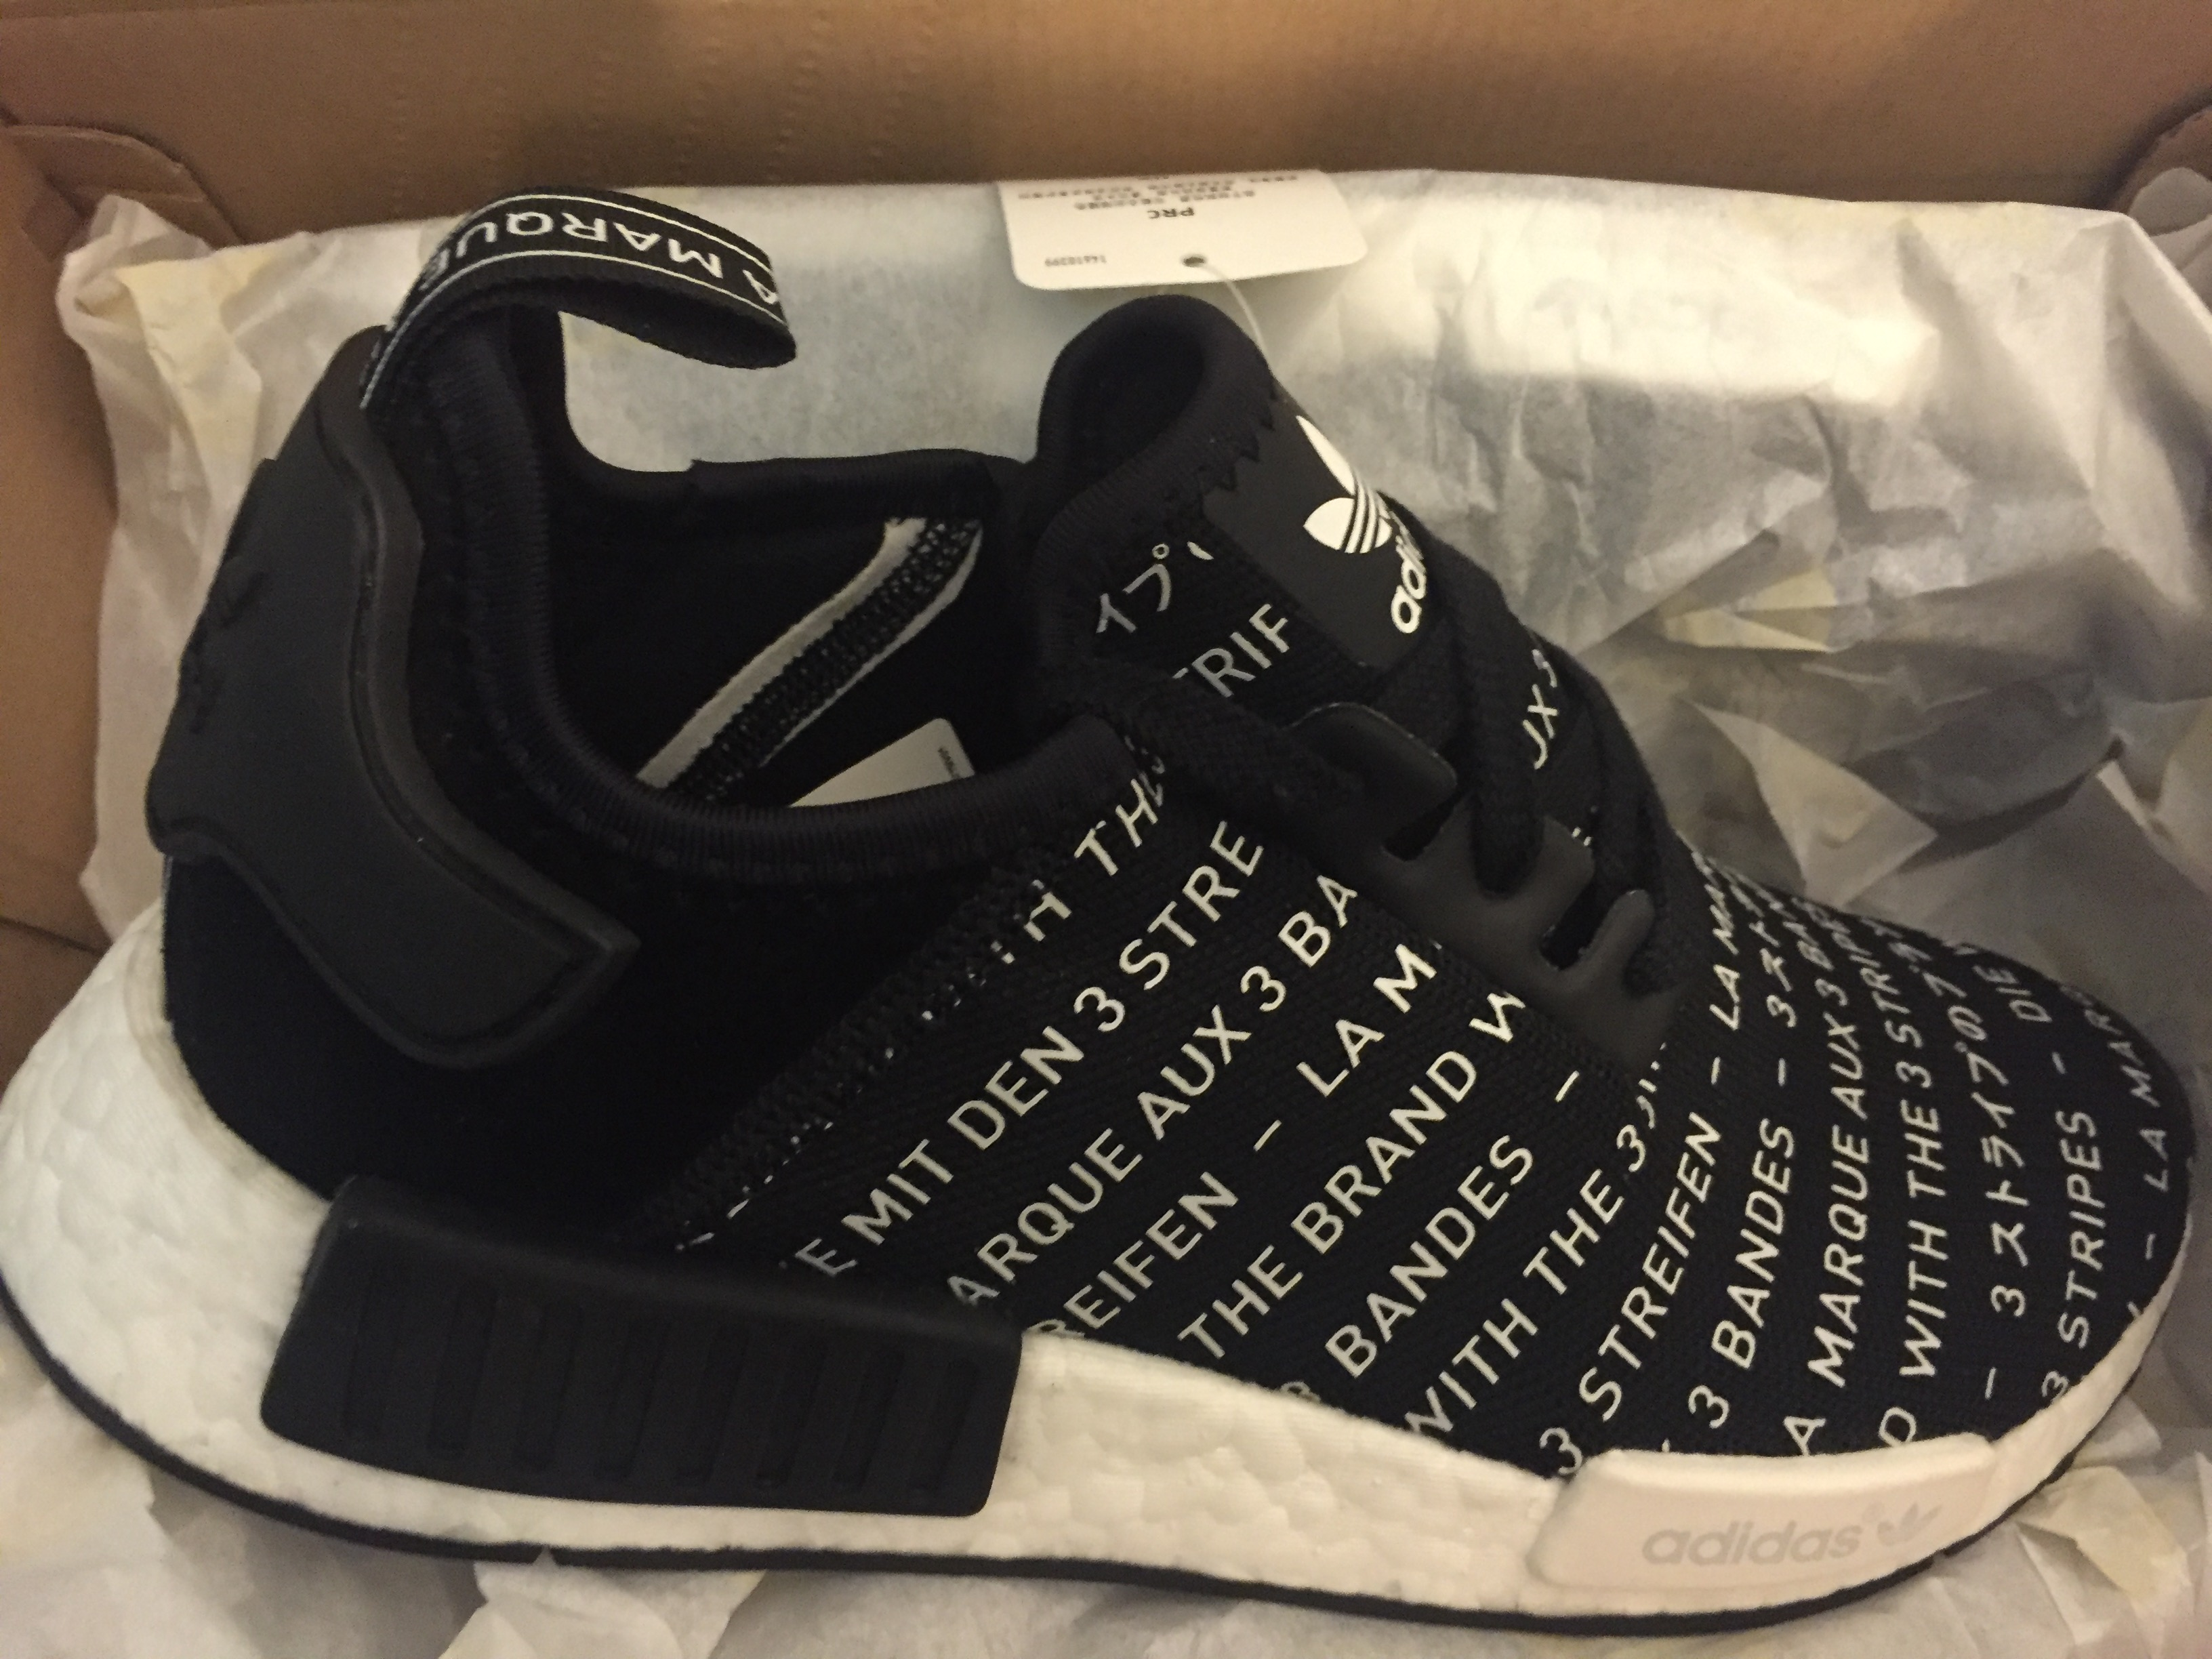 652f0d432 Adidas Nmd R1 Blackout Whiteout Pack Black Size 7